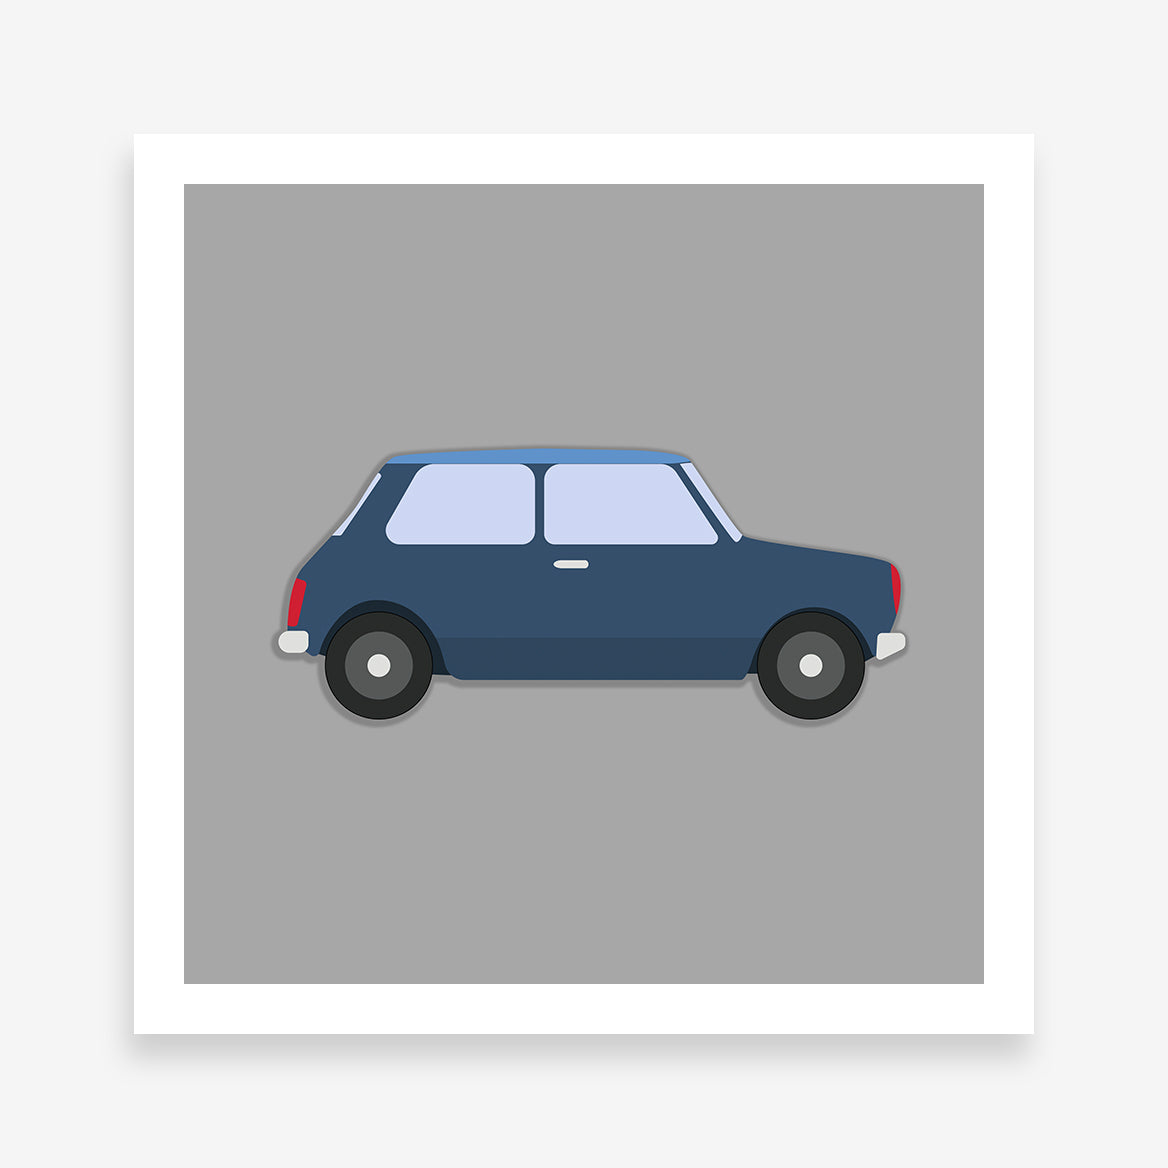 Poster print with a blue classic car on a grey background.